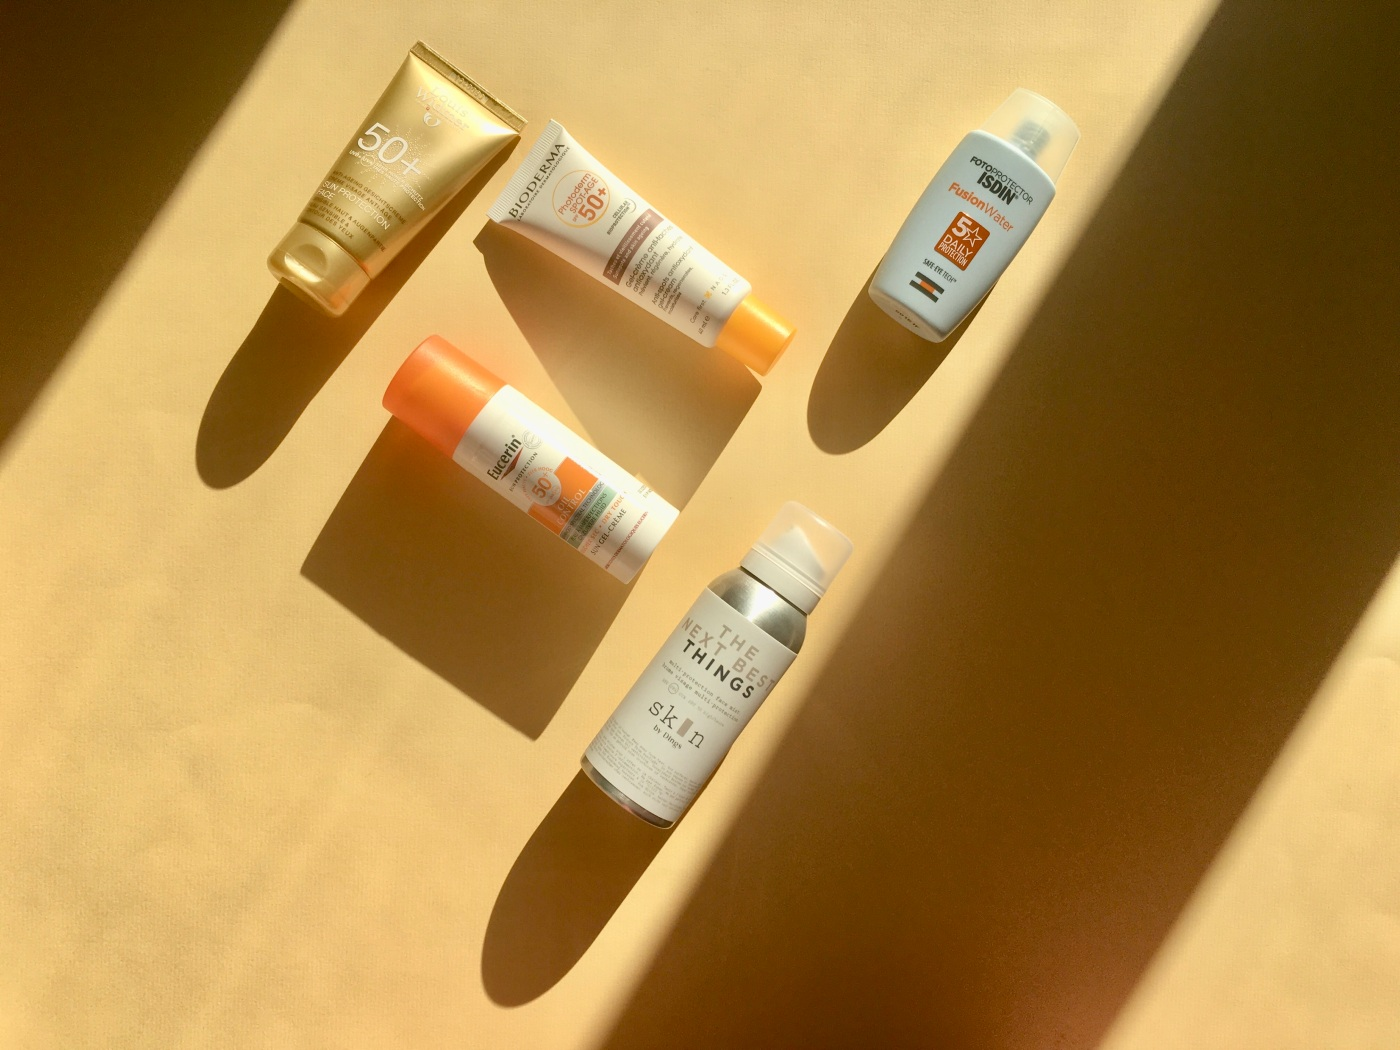 sunscreen face isdin fusionwater skin by dings the next best thing louis widmer bioderma eucerin